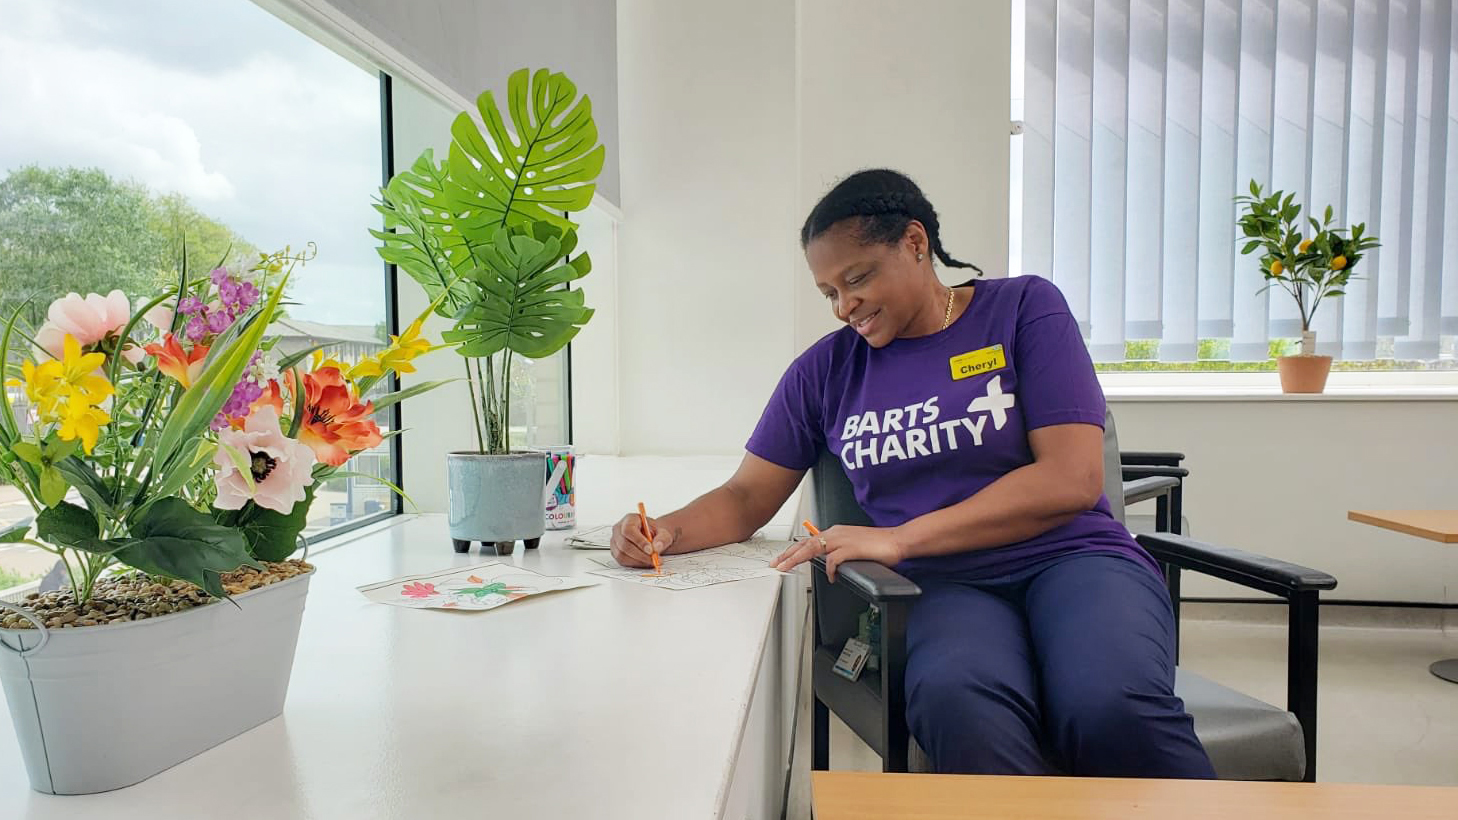 Wellbeing space at Newham Hospital funded by Barts Charity